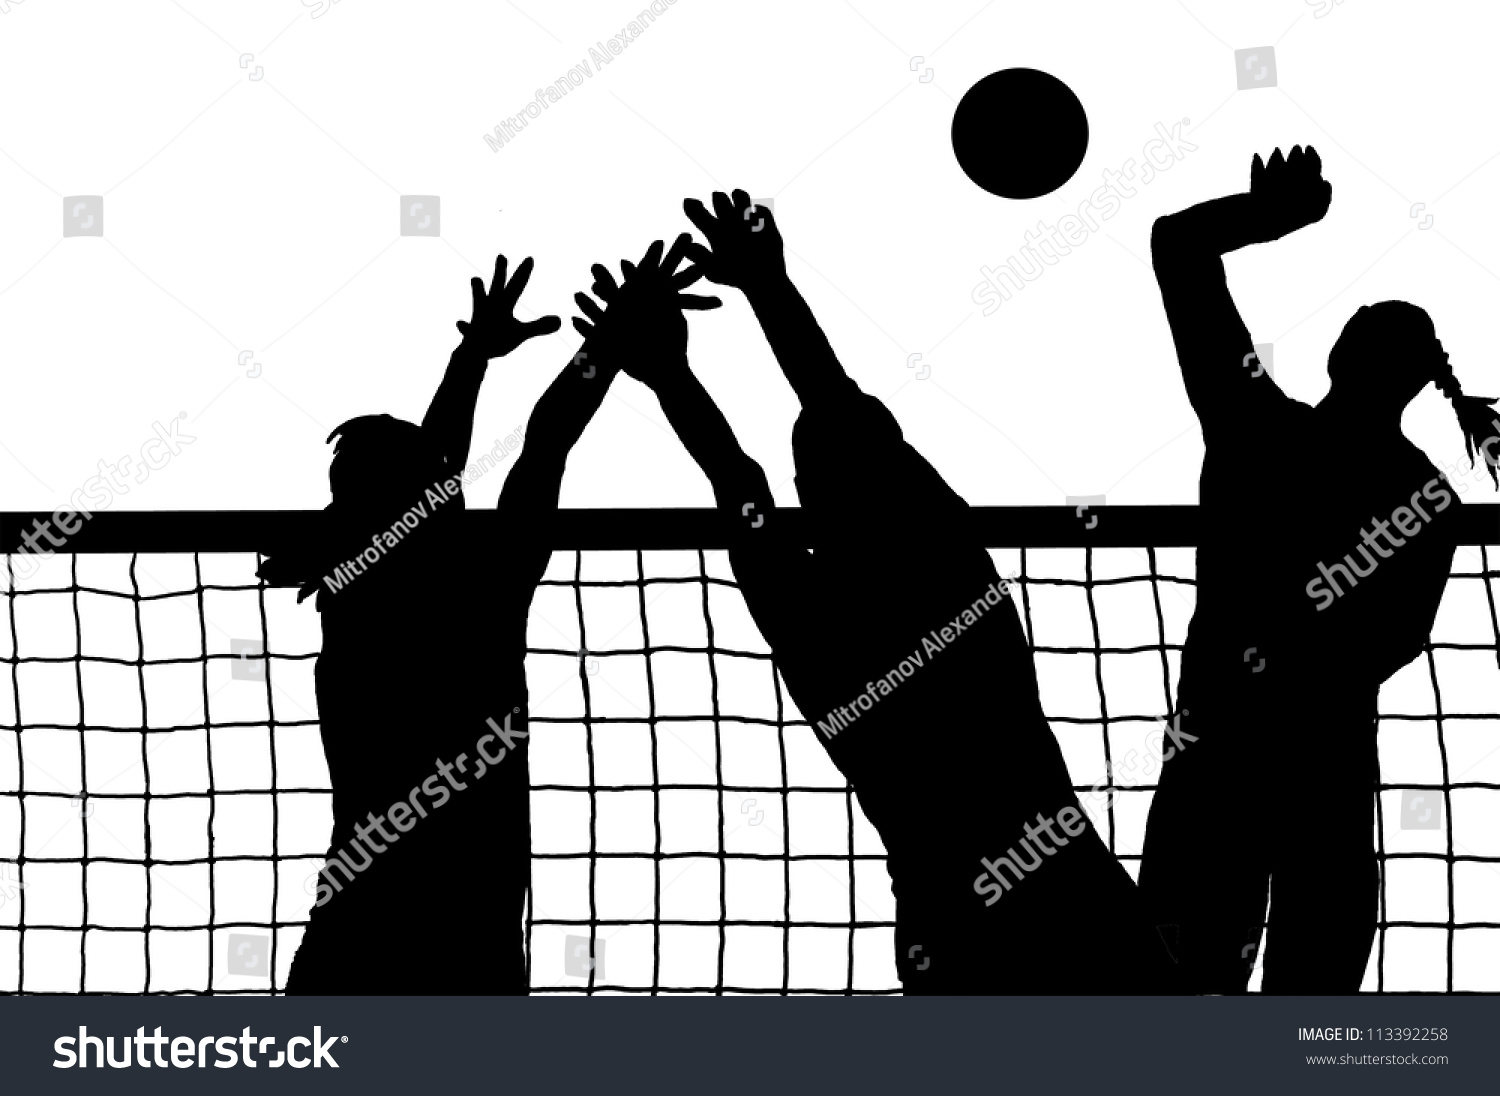 Abstract Triangle Volleyball Player Silhouette Stock: Volleyball Three Women And Ball Silhouette Vector